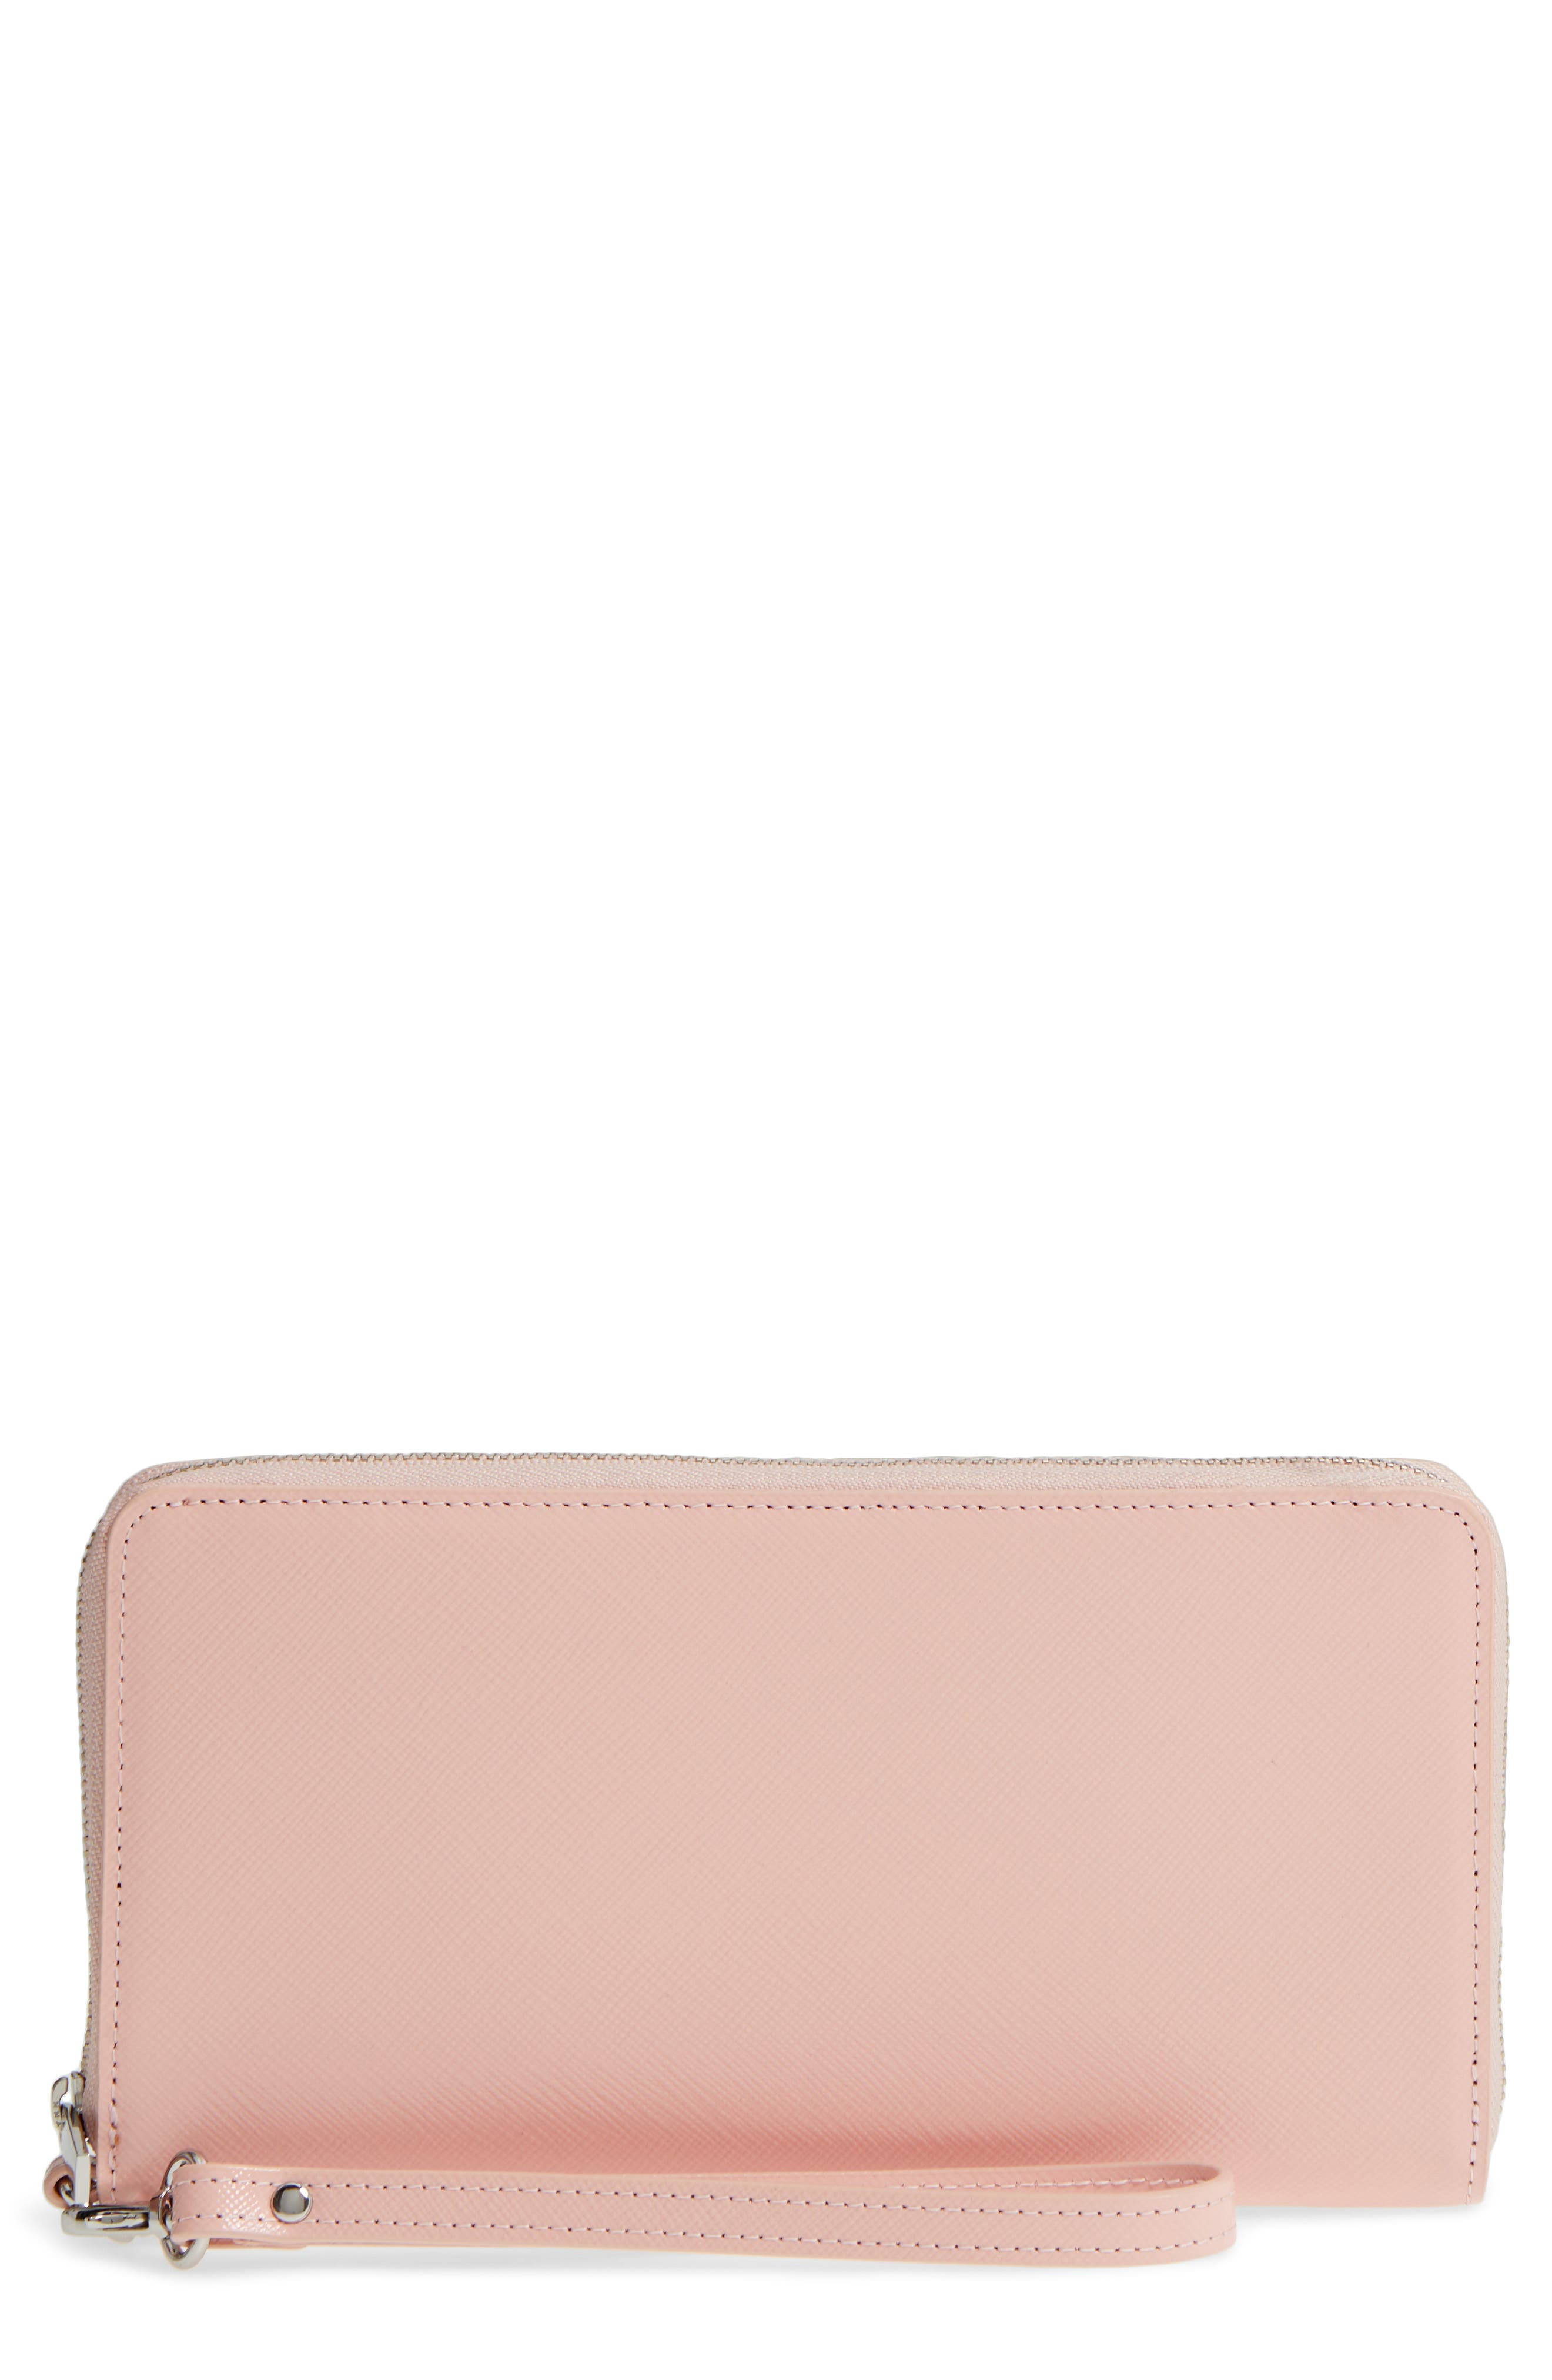 Alternate Image 1 Selected - Nordstrom Leather Zip Around Wallet